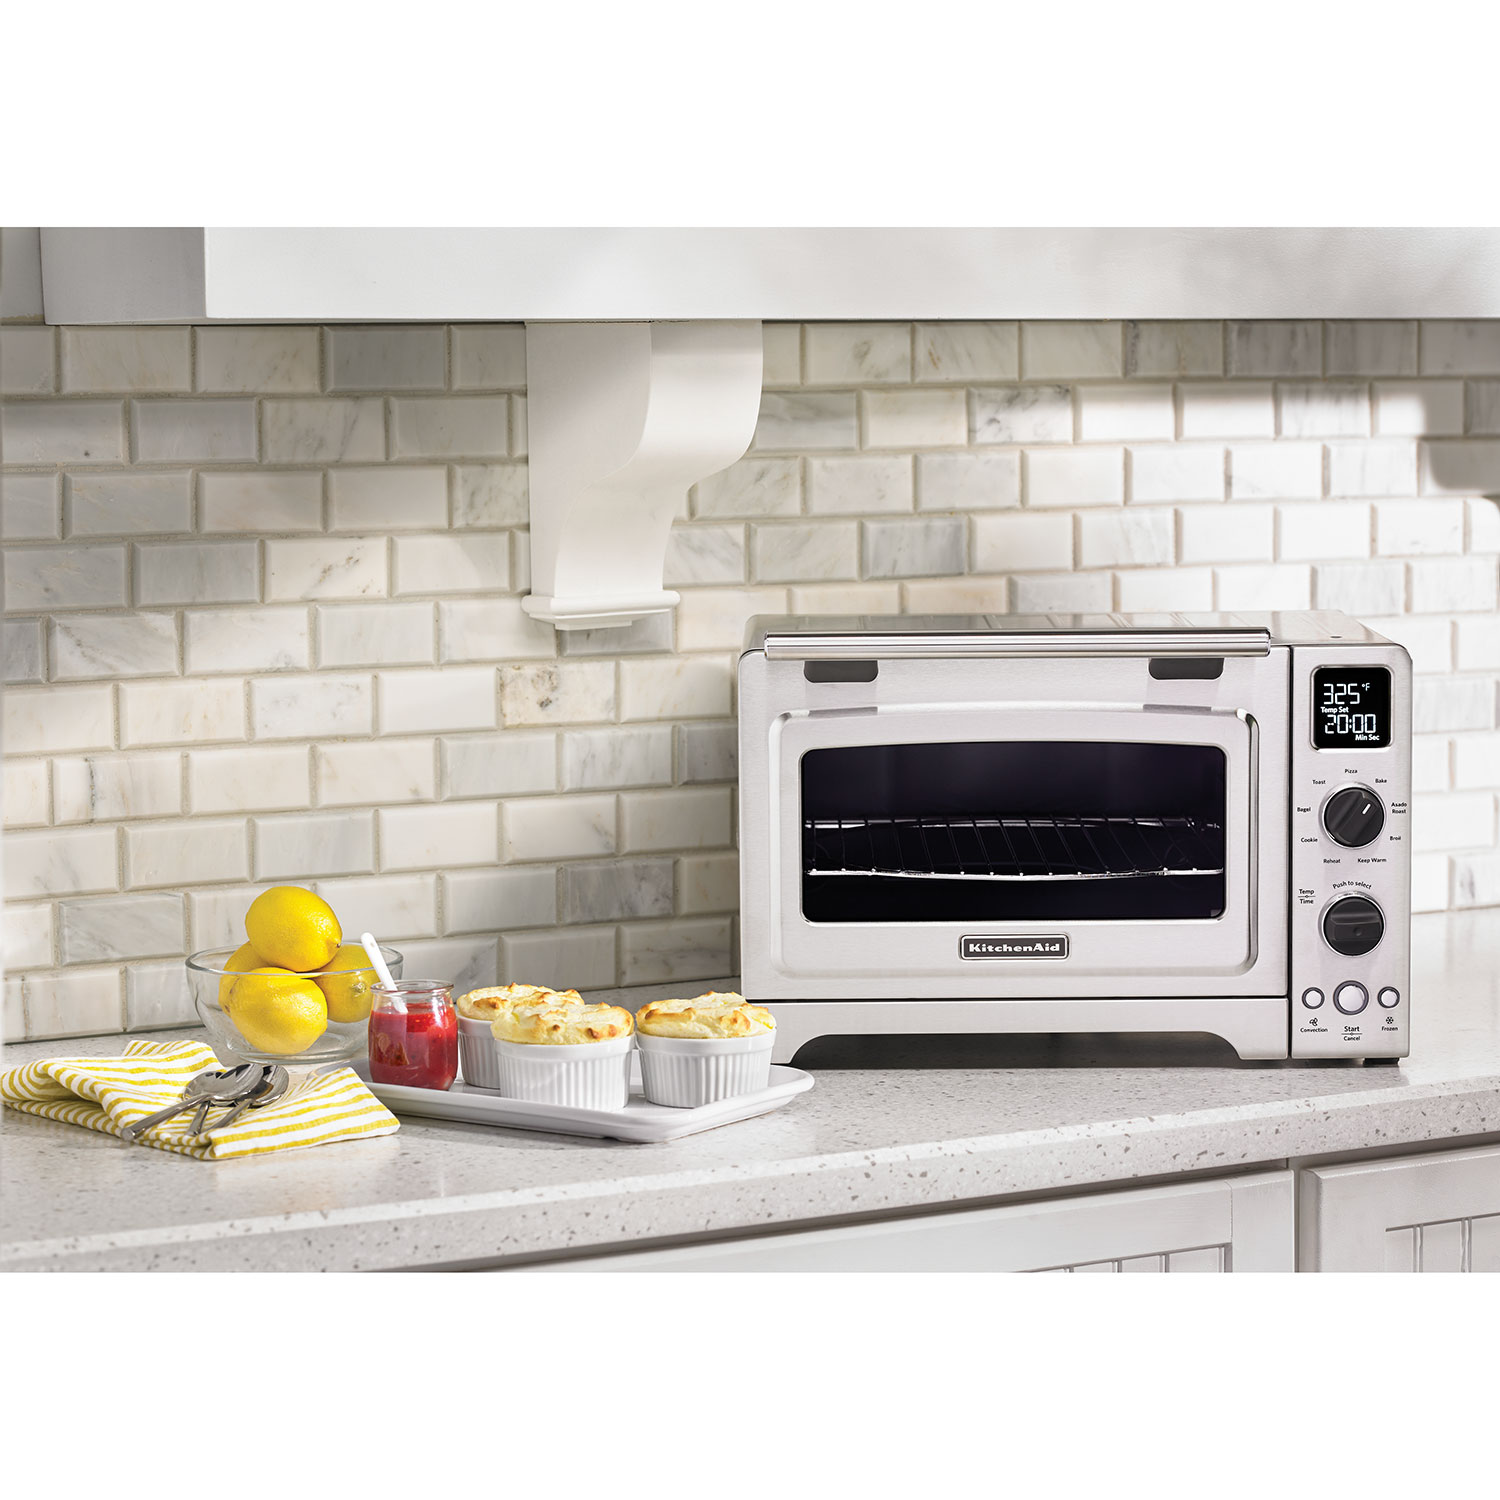 "Kitchenaid Conventional Oven kitcheaid 12"" convection toaster oven - stainless steel : toasters"